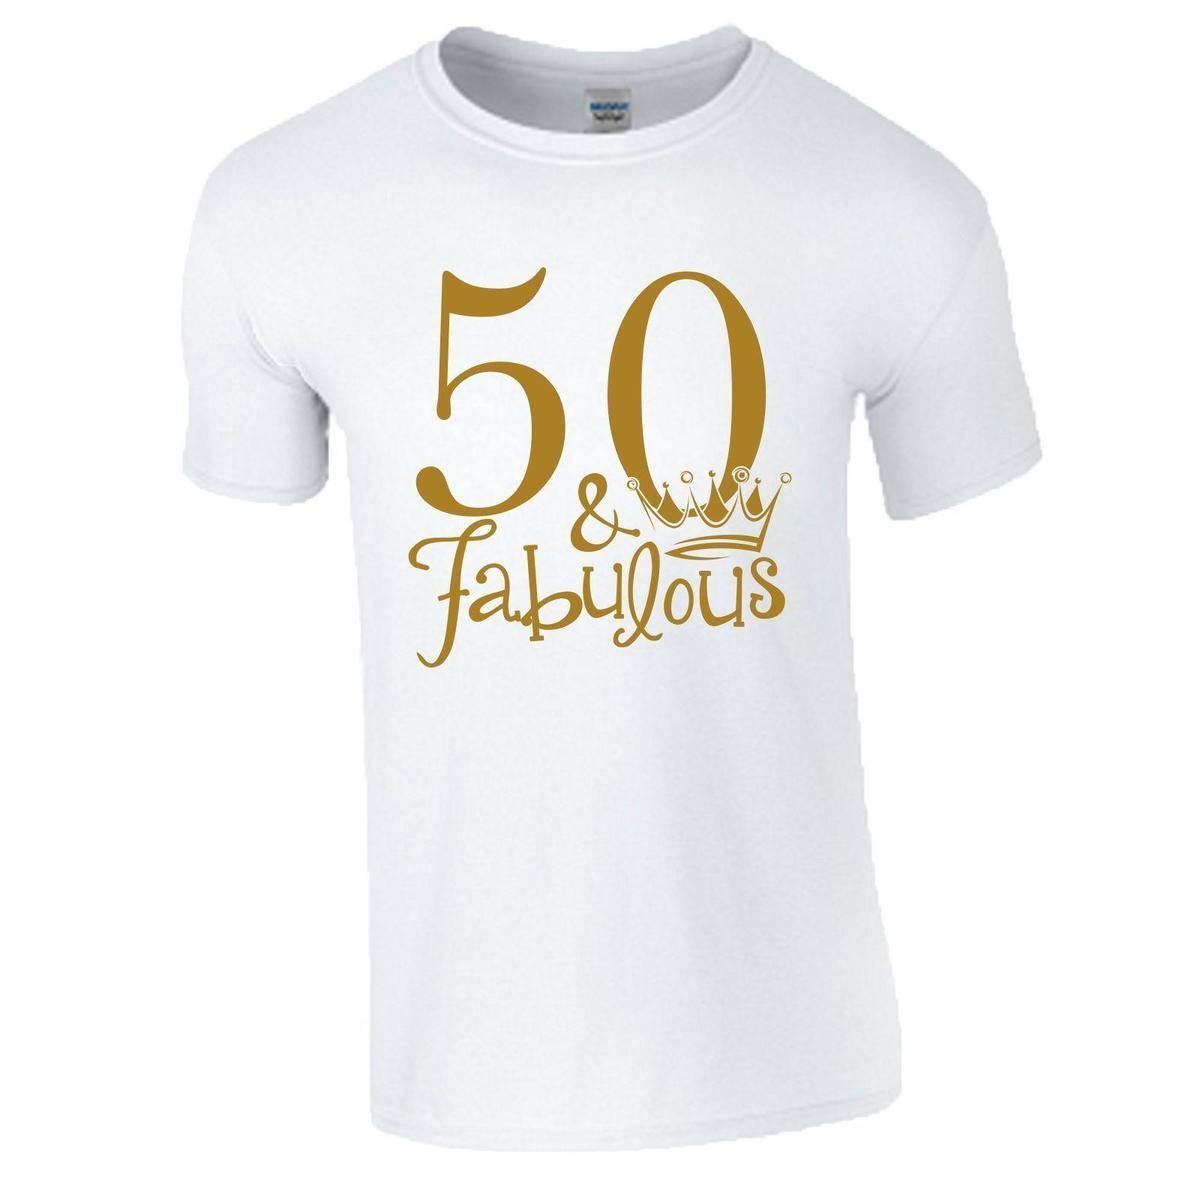 50th Birthday Gift T Shirt Made In 1968 King Queen 50 Fabulous Crown Mens Ladies Funny Slogan Shirts Cool Design From Amesion2504 1208